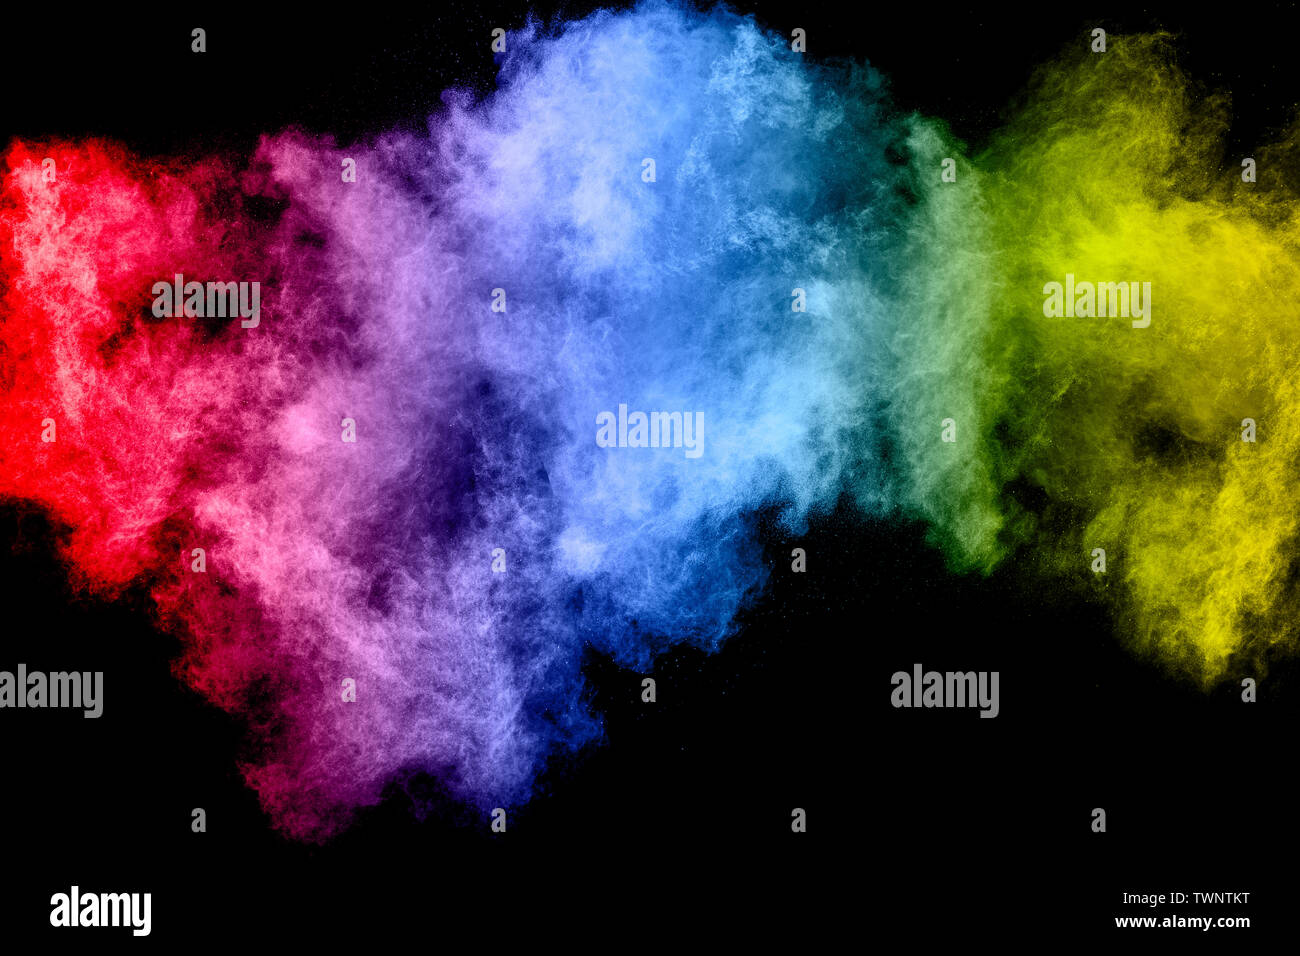 Abstract Multicolored Dust Explosion On Black Background